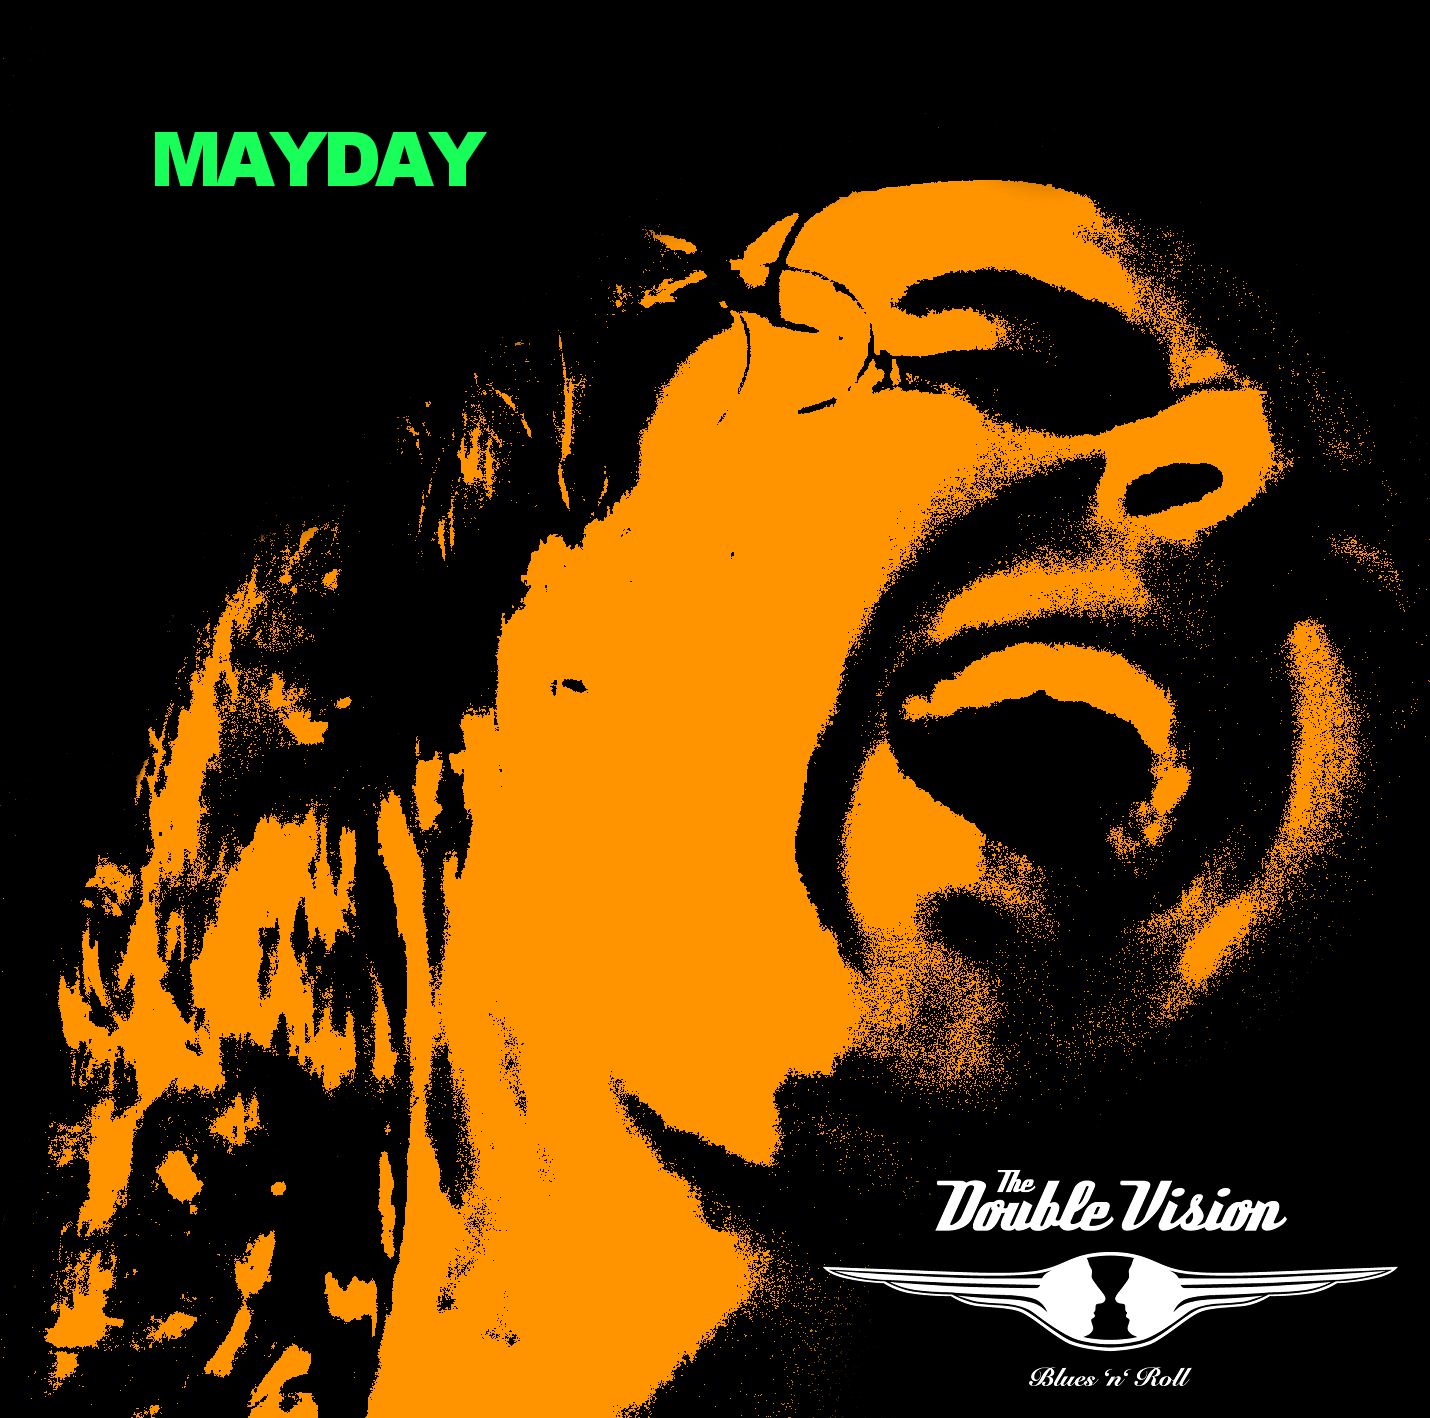 MAYDAY - The Double Vision (Vinyl)